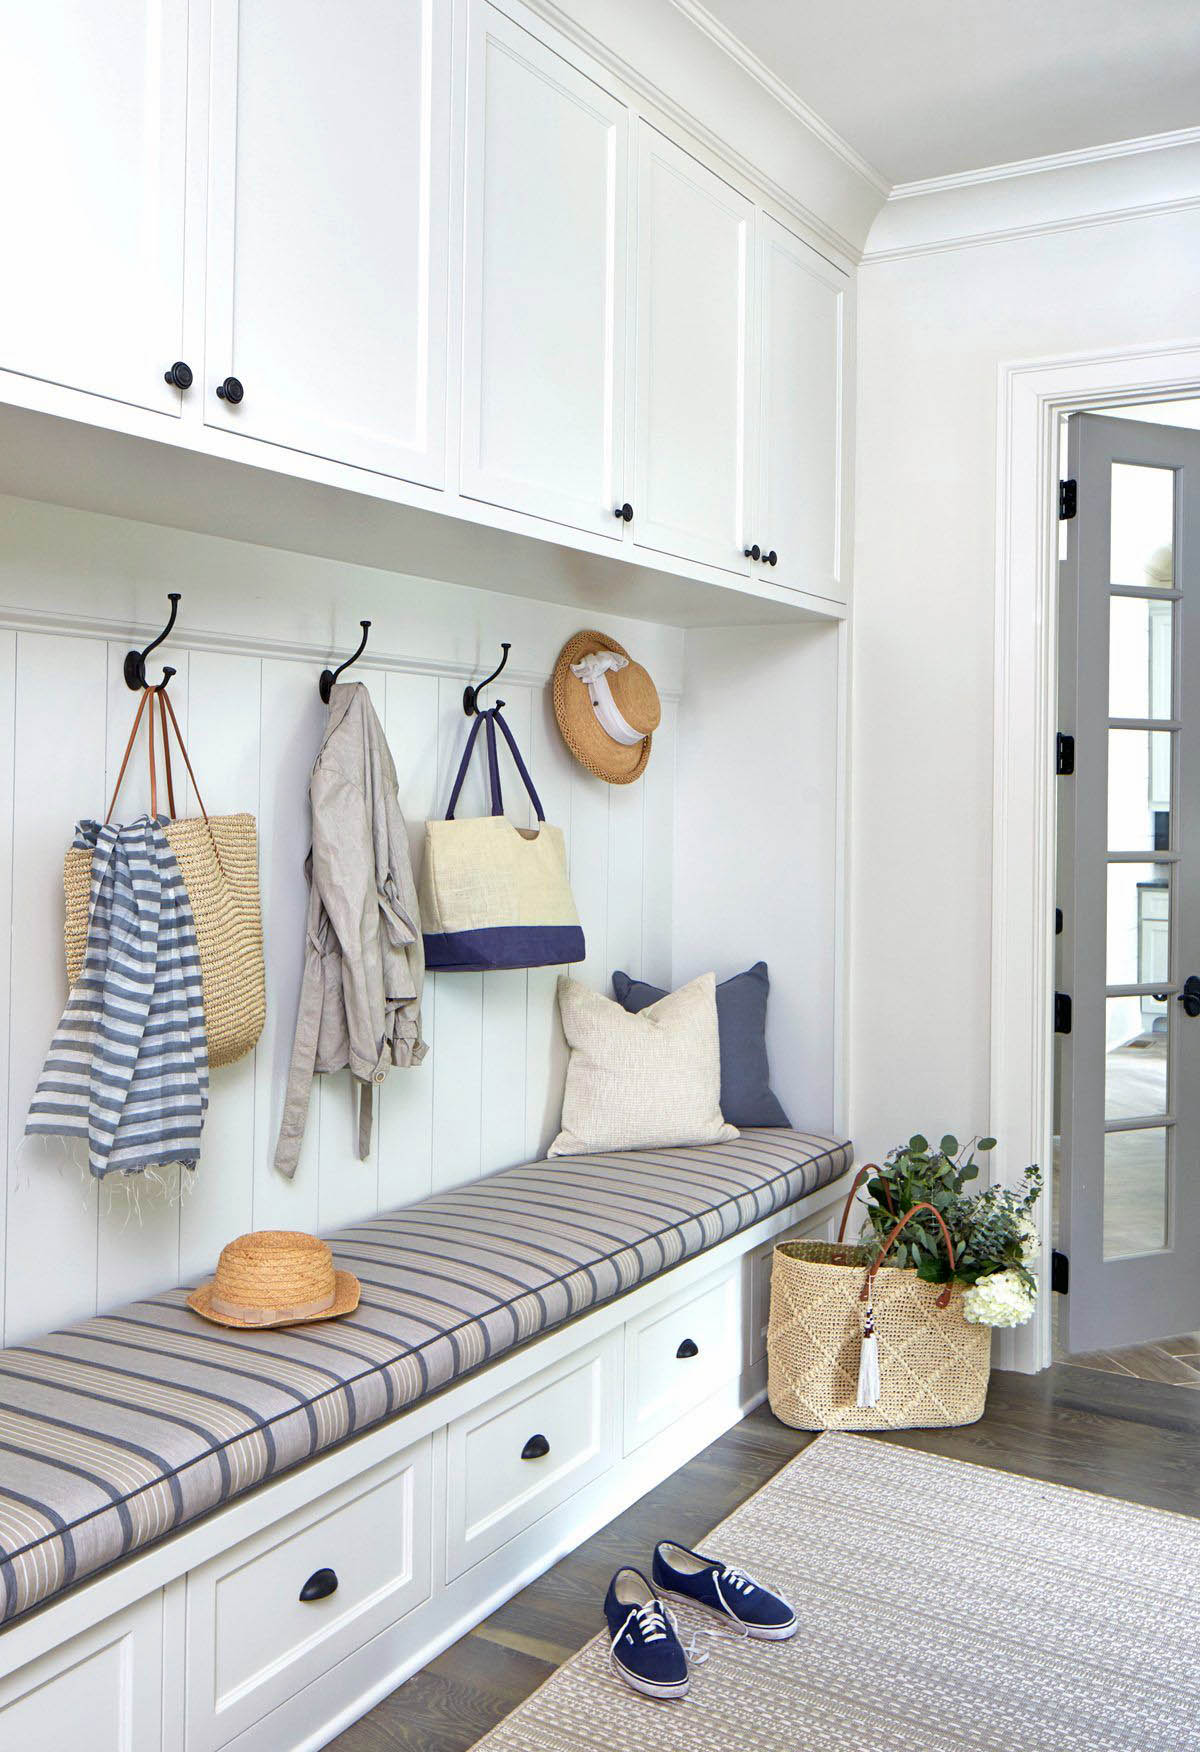 beautiful small mudroom storage unit design idea plush bench seating cushion with drawers and cabinets white paint with black knobs and coat hooks